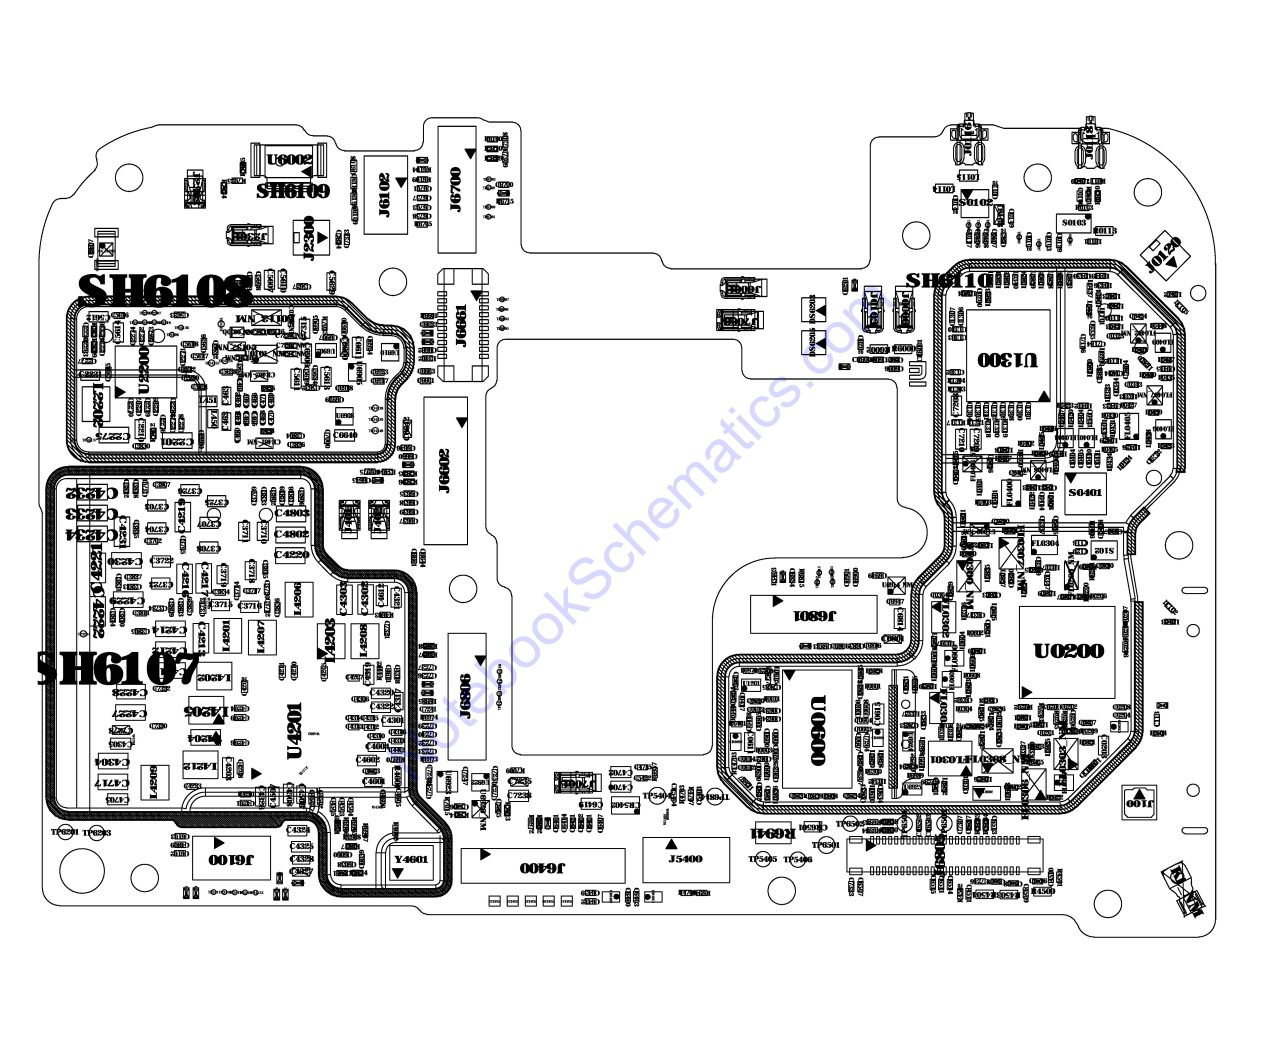 Redmi Note 8 Pro Schematic & PCB Layout